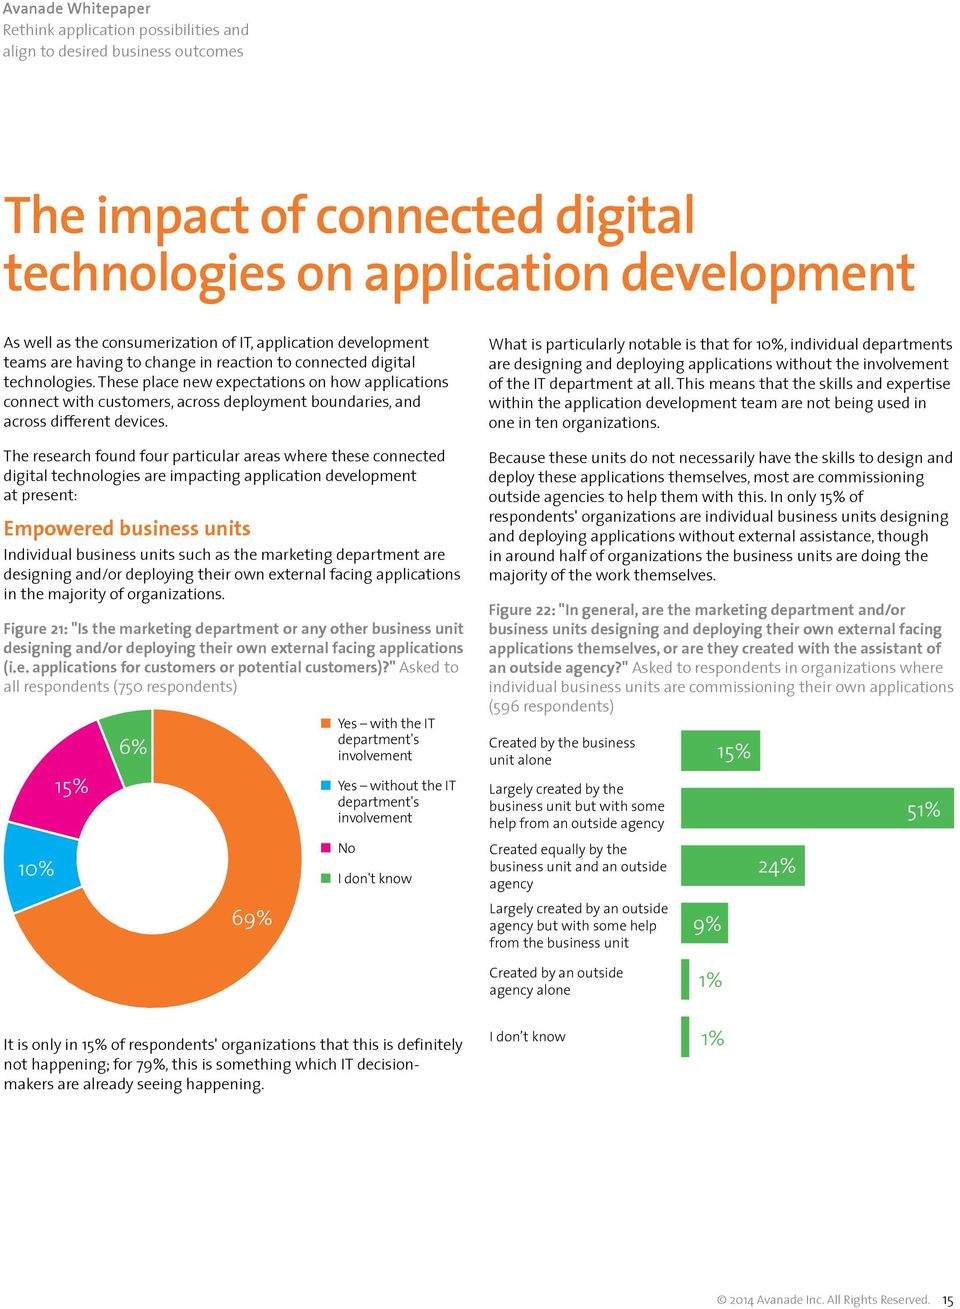 The research found four particular areas where these connected digital technologies are impacting application development at present: Empowered business units Individual business units such as the